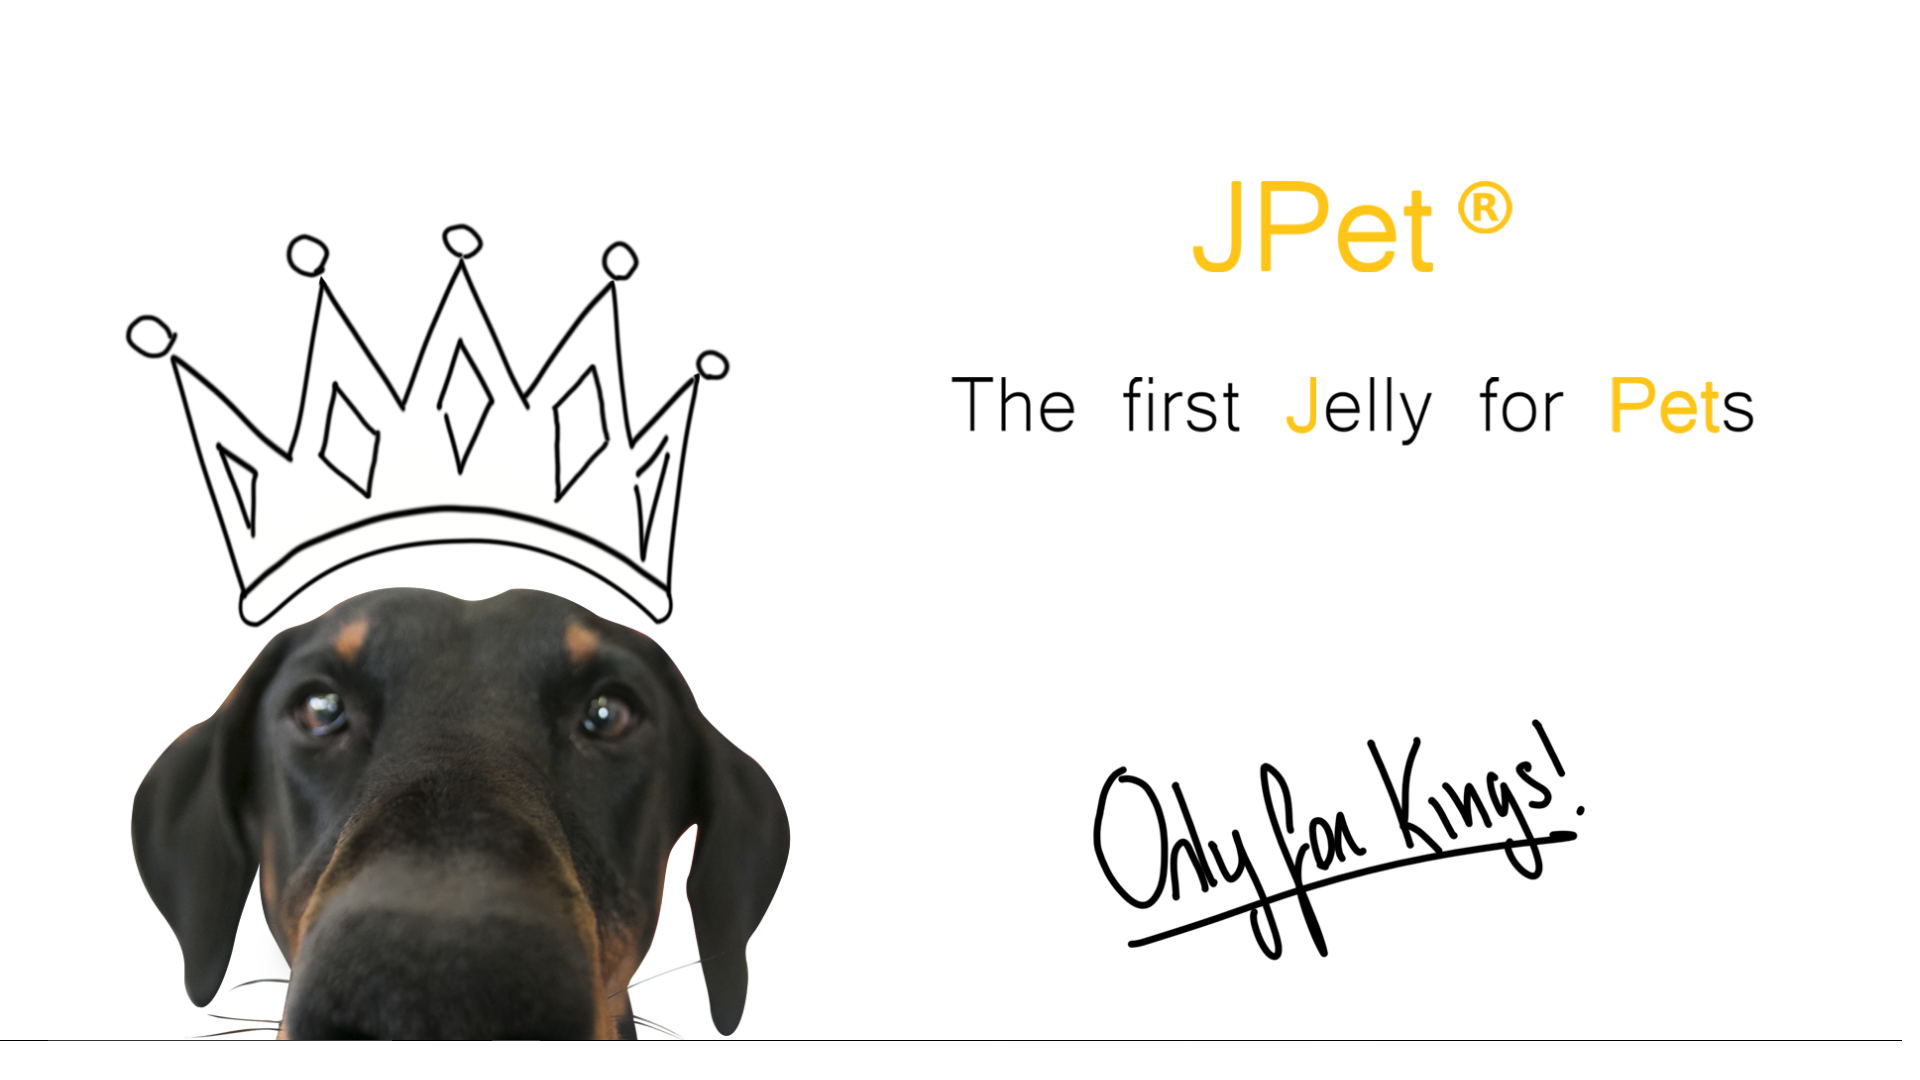 Jpet® -  The first Jelly for Pets